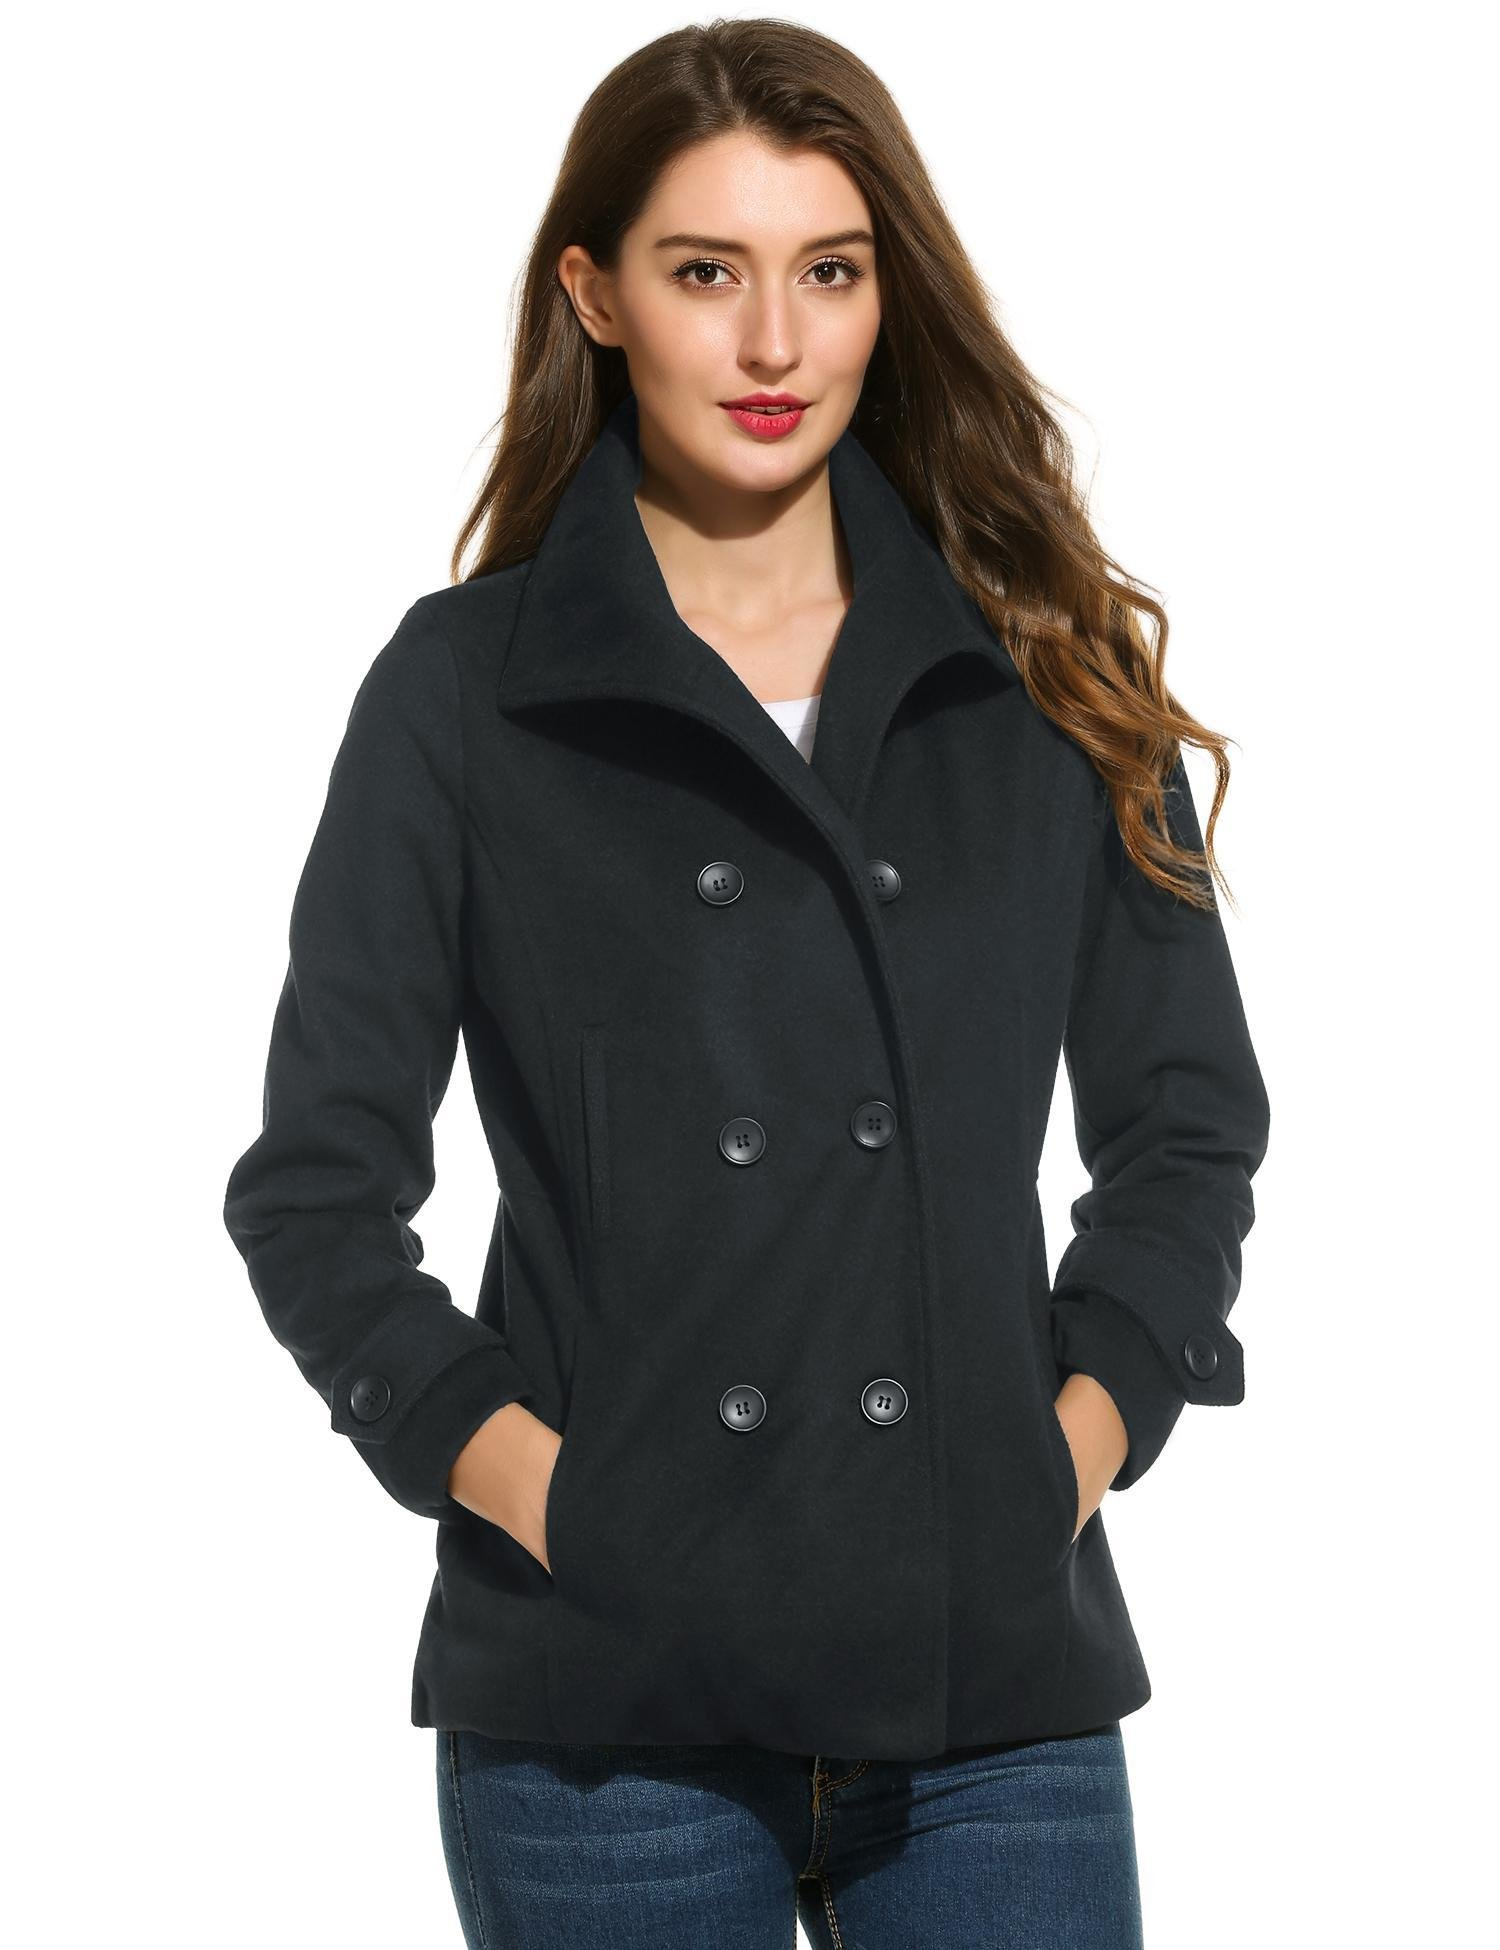 Zeagoo Women's Peacoat Double Breasted Overcoat Long Sleeve Jacket Dark Grey S